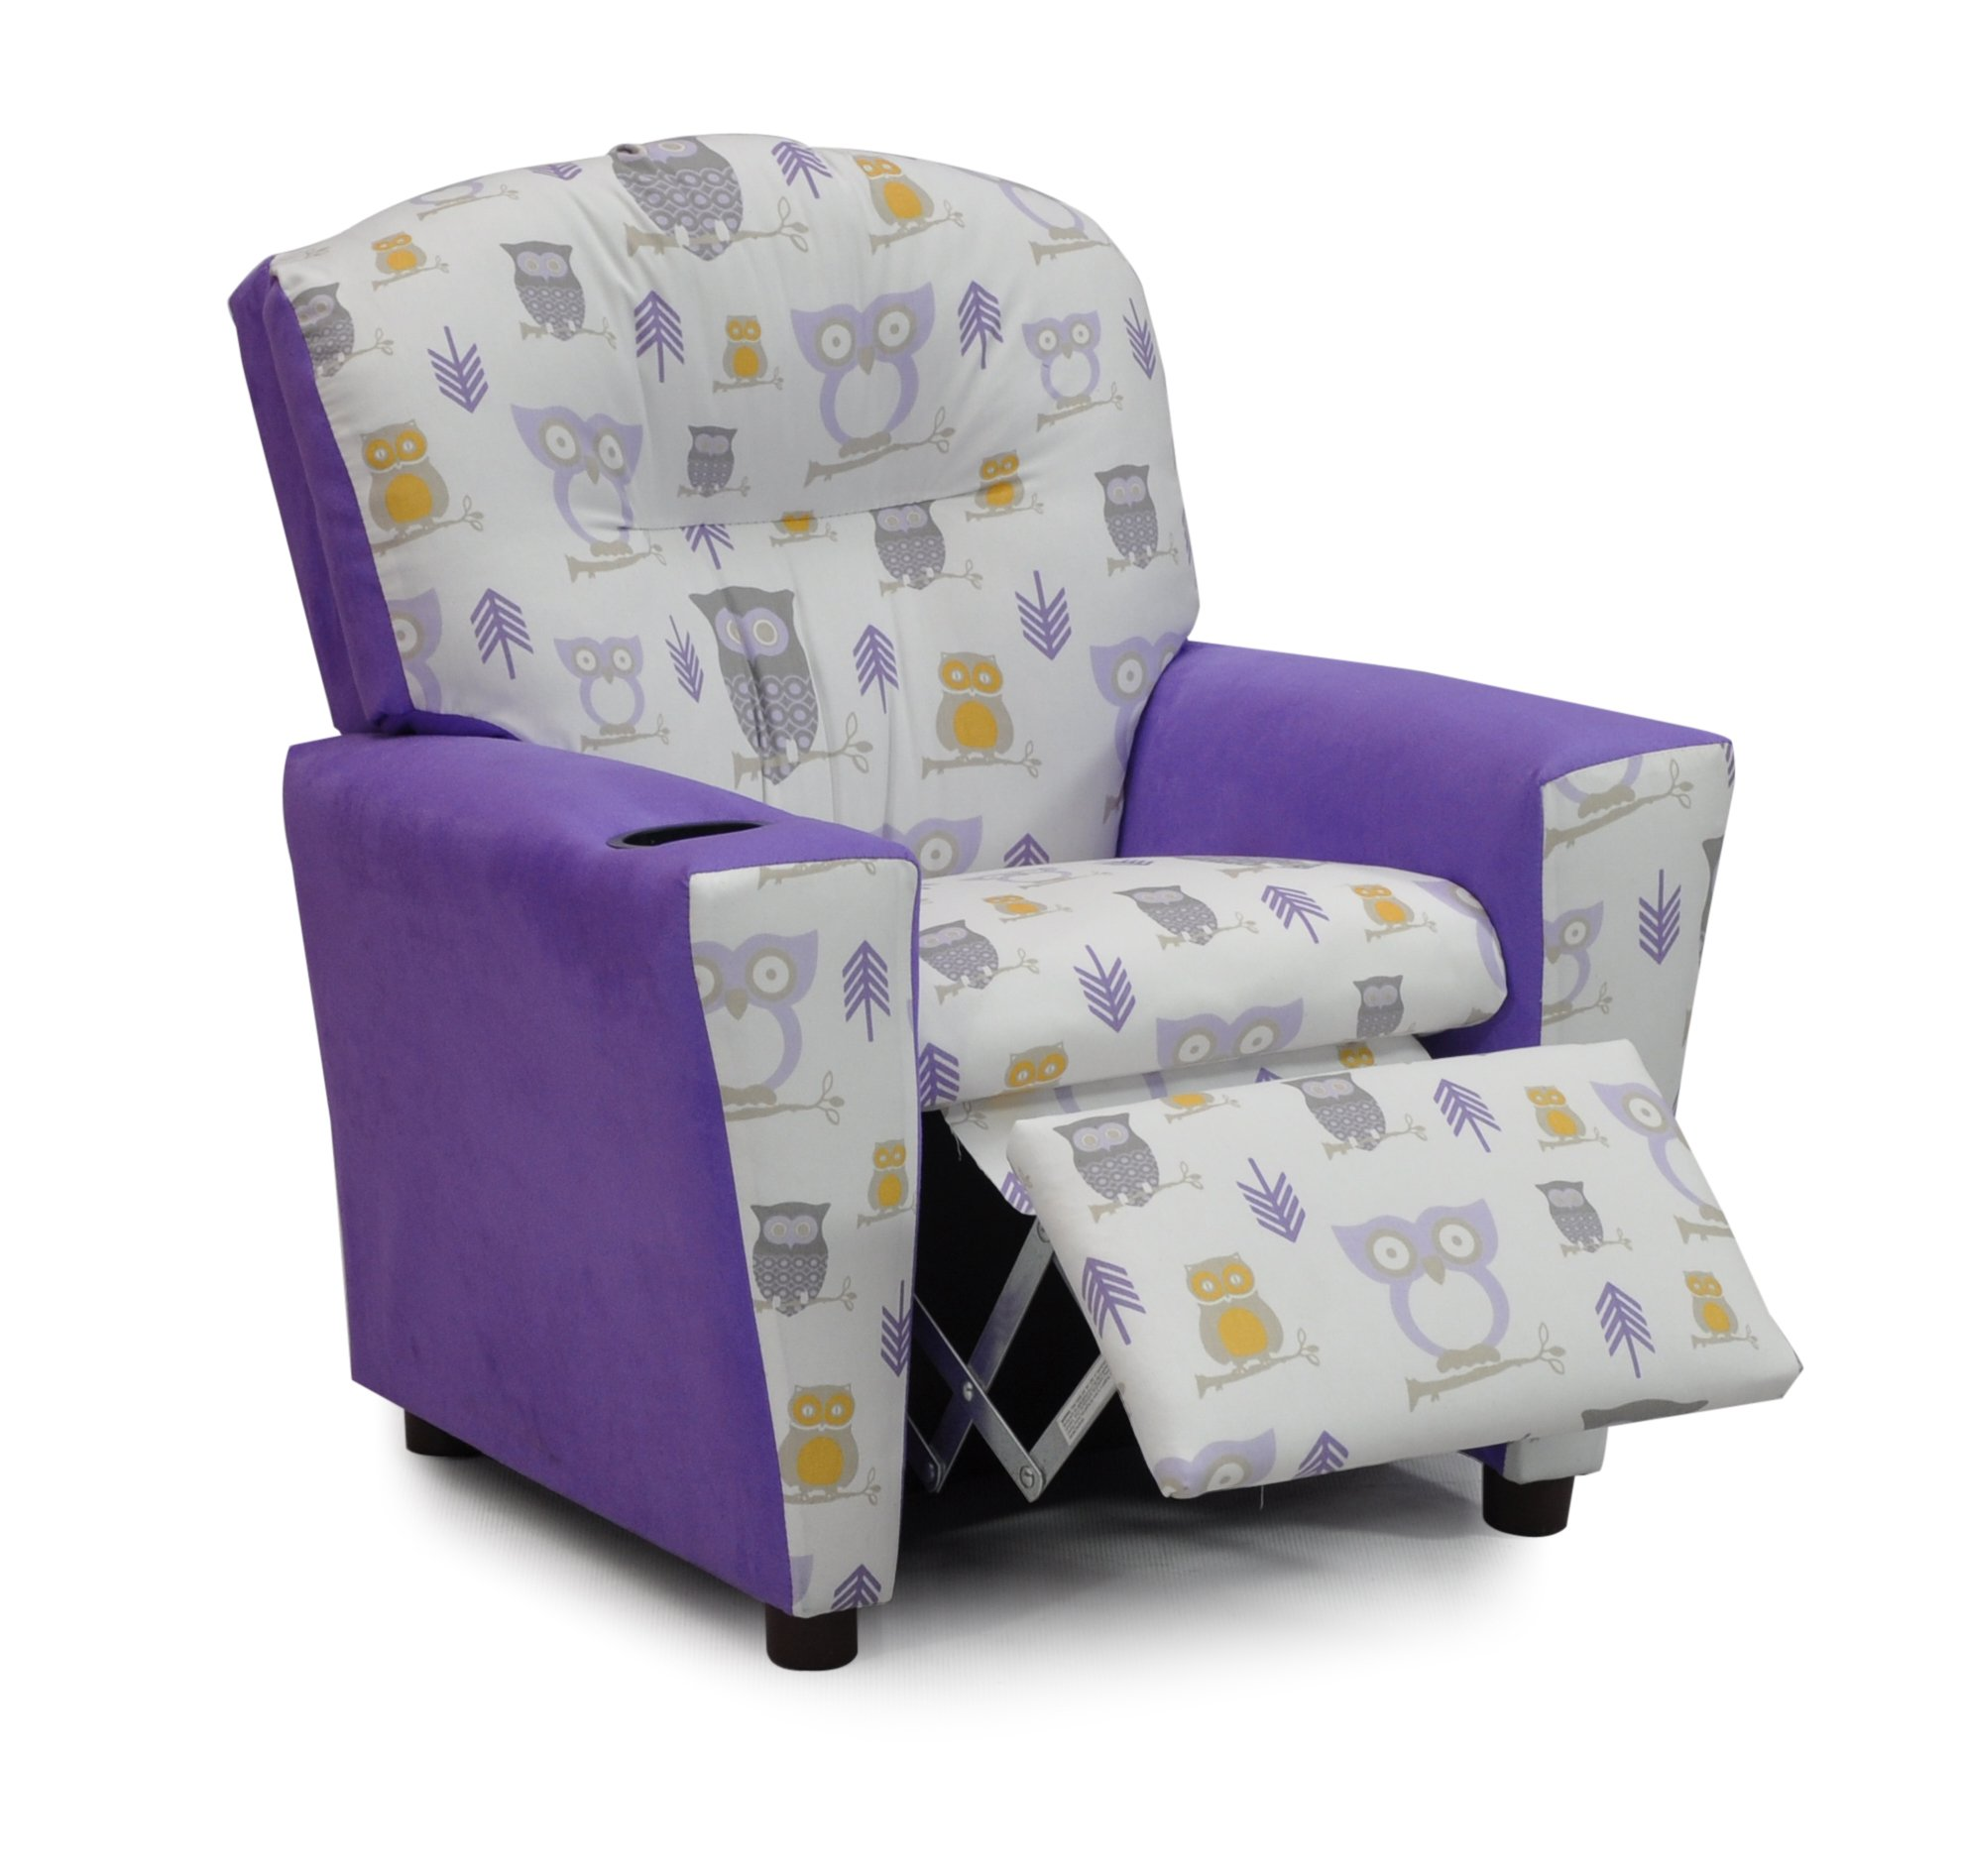 Childrens Upholstered Armchair - Your Child's Favorite Christmas Gift - Kids Recliner with Cup Holders - We Love Owls :) (Modern Owls)